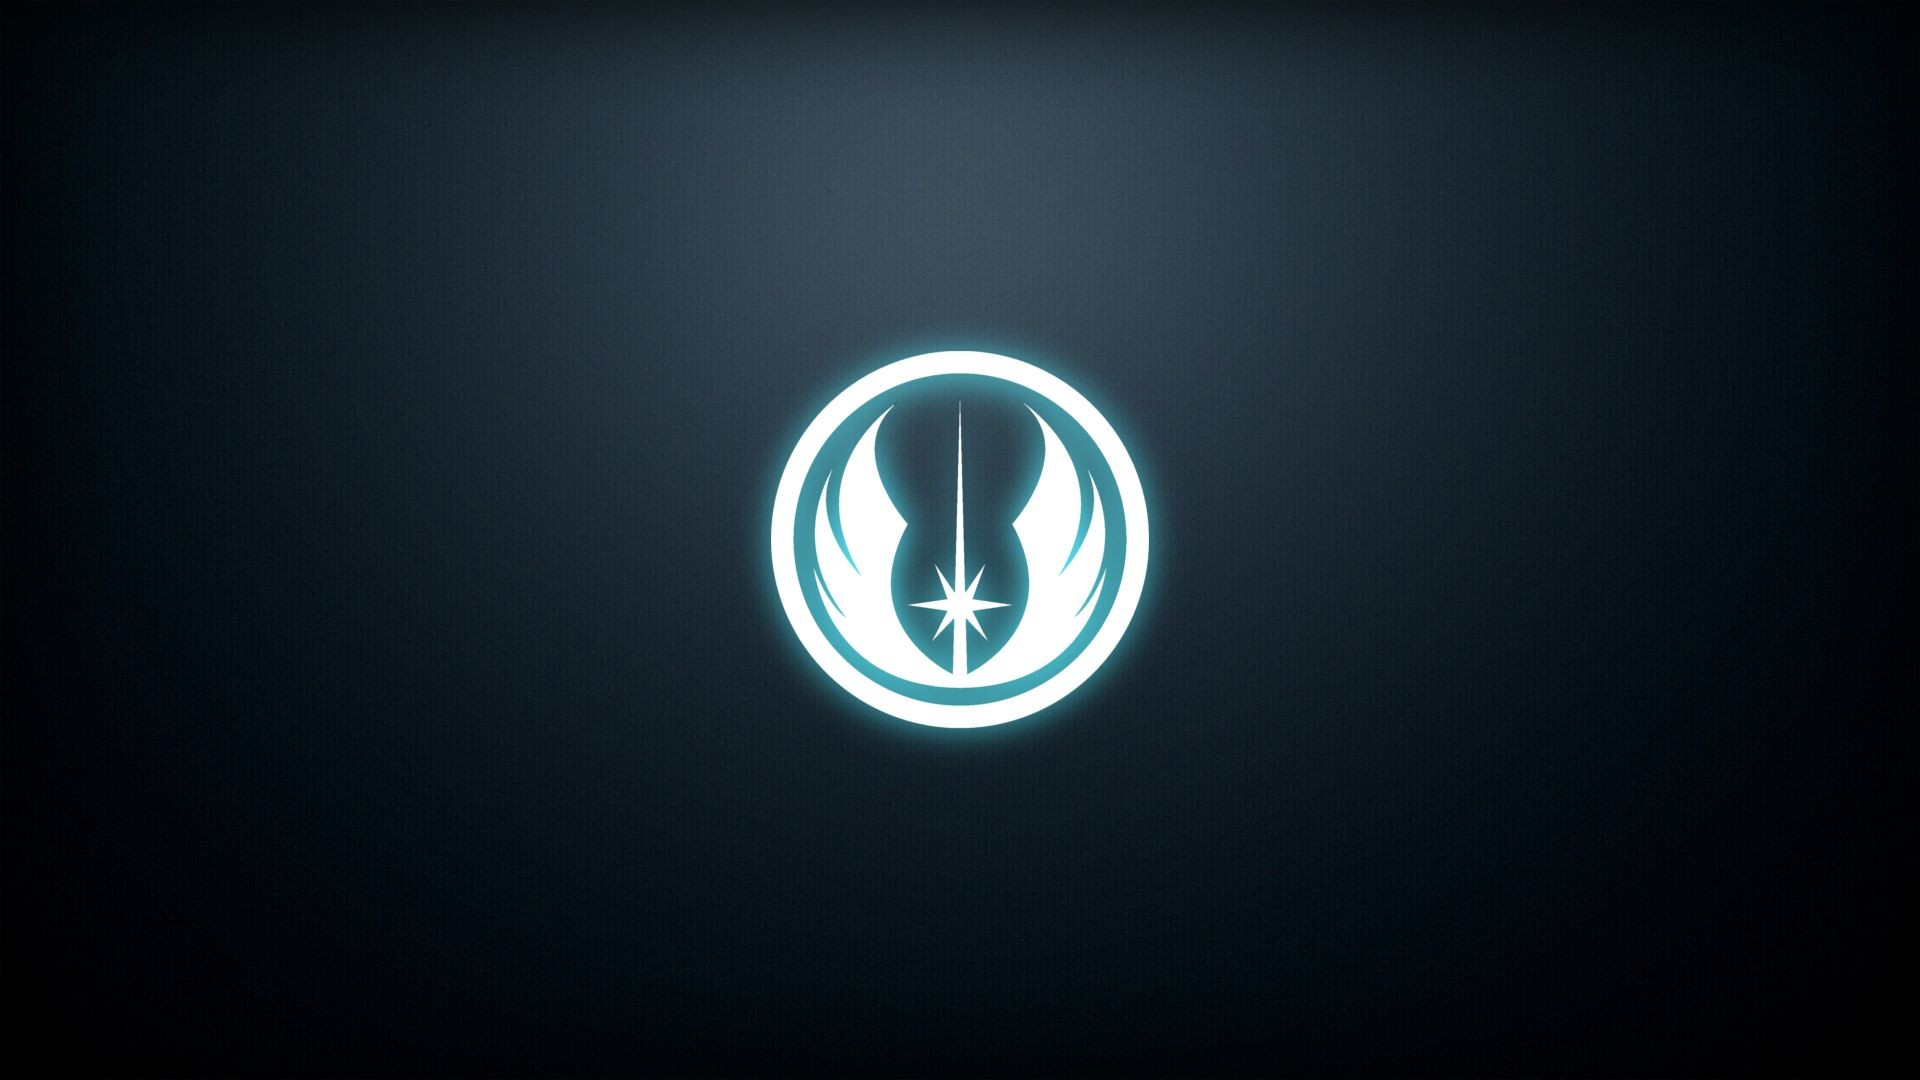 1920x1080 Star Wars Wallpapers with Jedi Symbol | The Art Mad Wallpapers